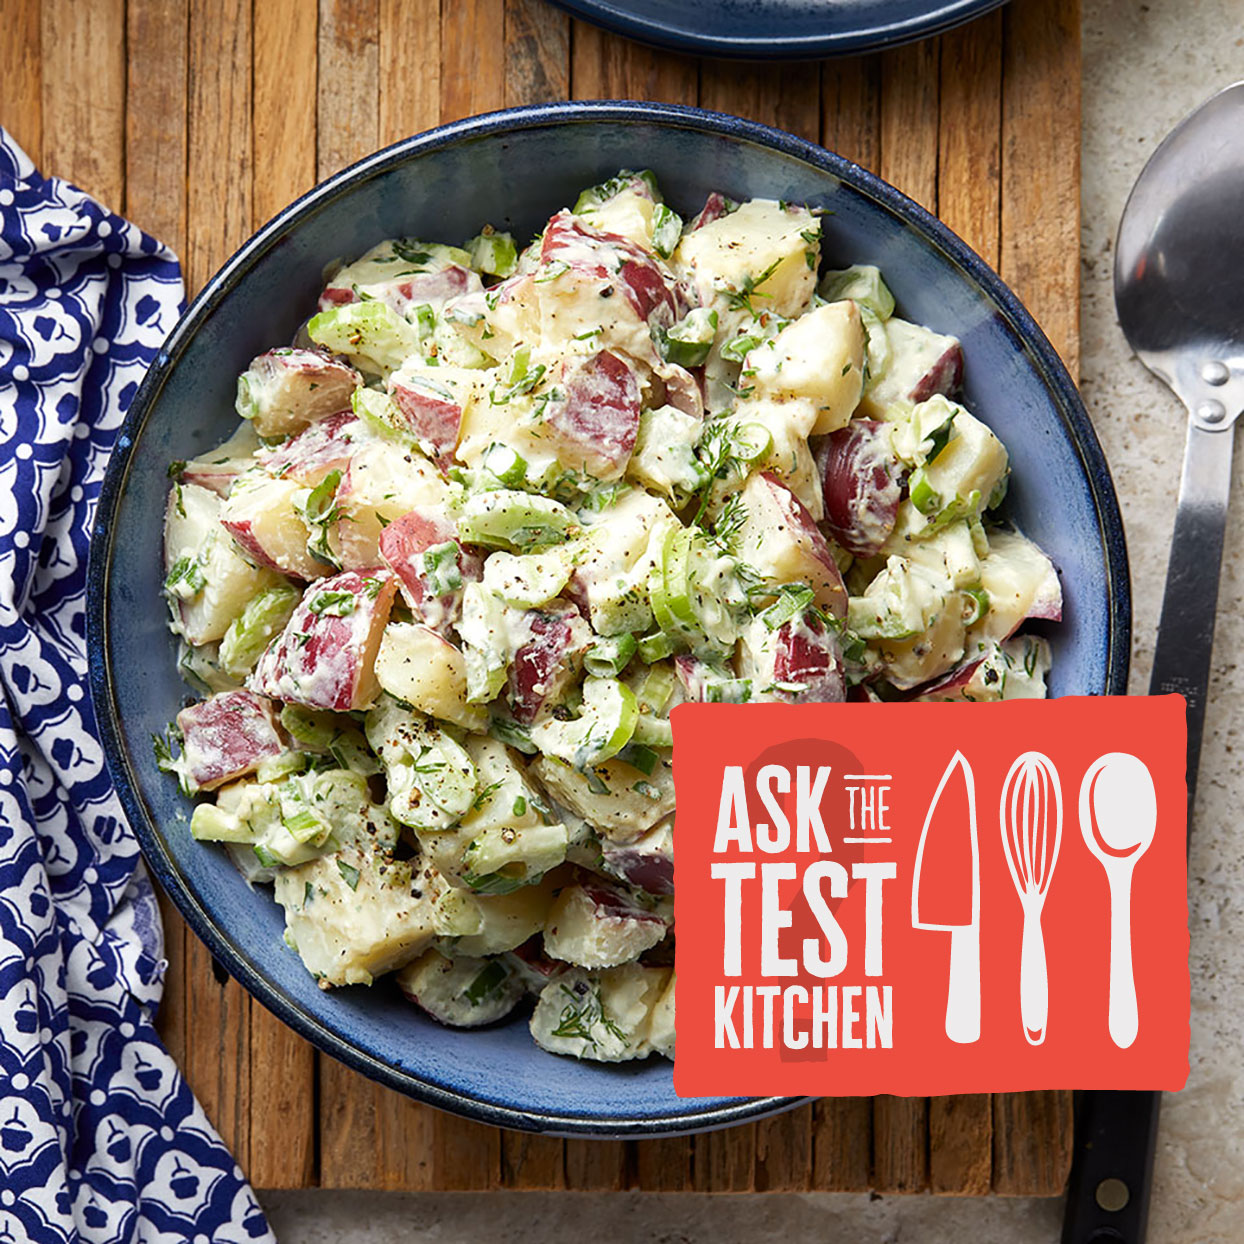 Ask the Test Kitchen